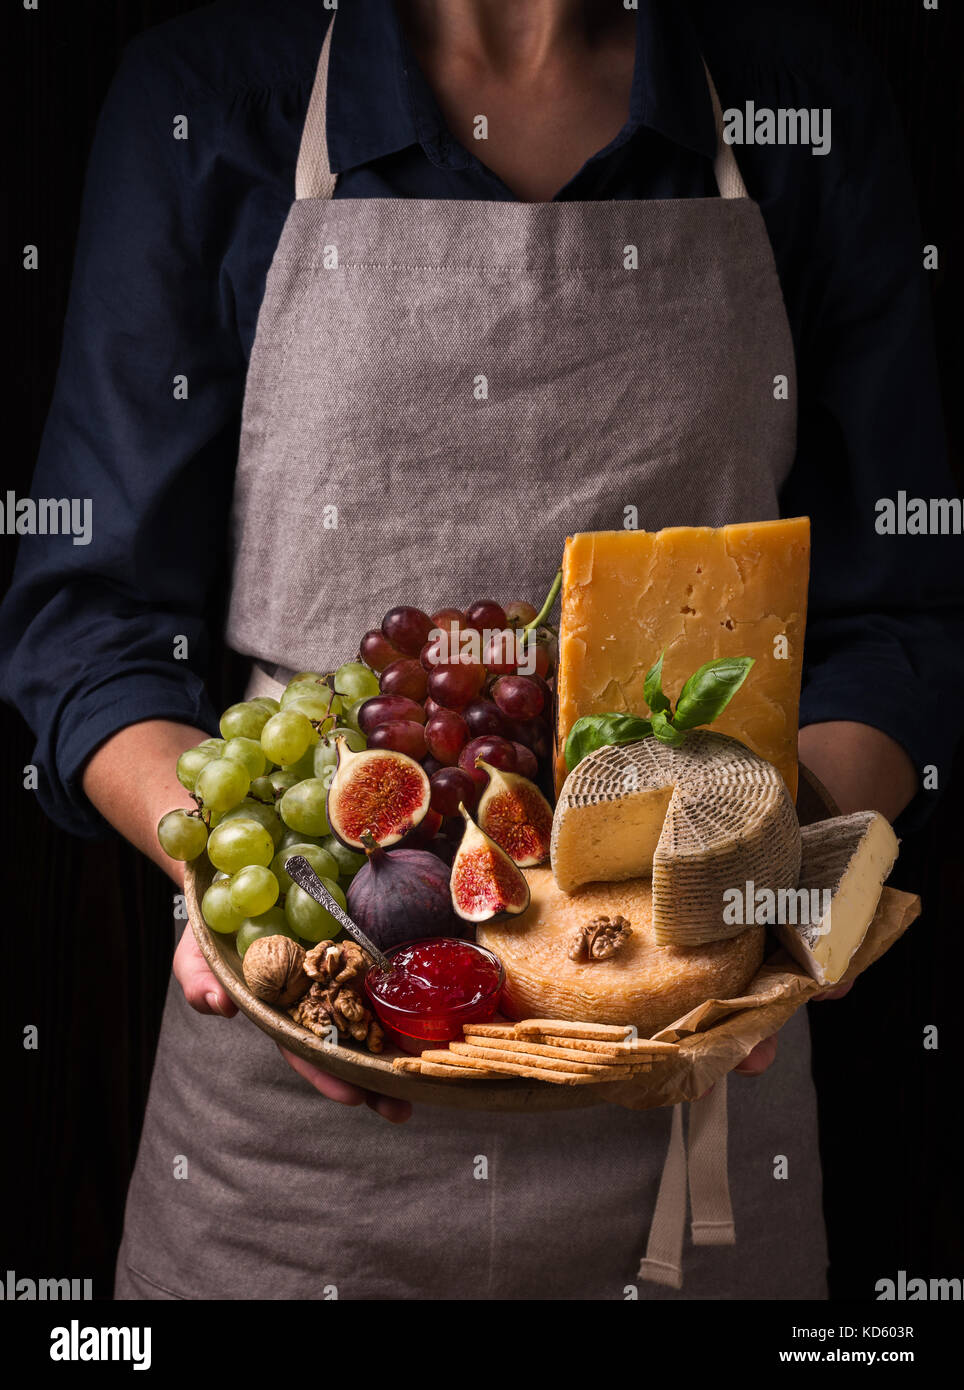 Woman holding a cheese plate with fruits and jam - Stock Image